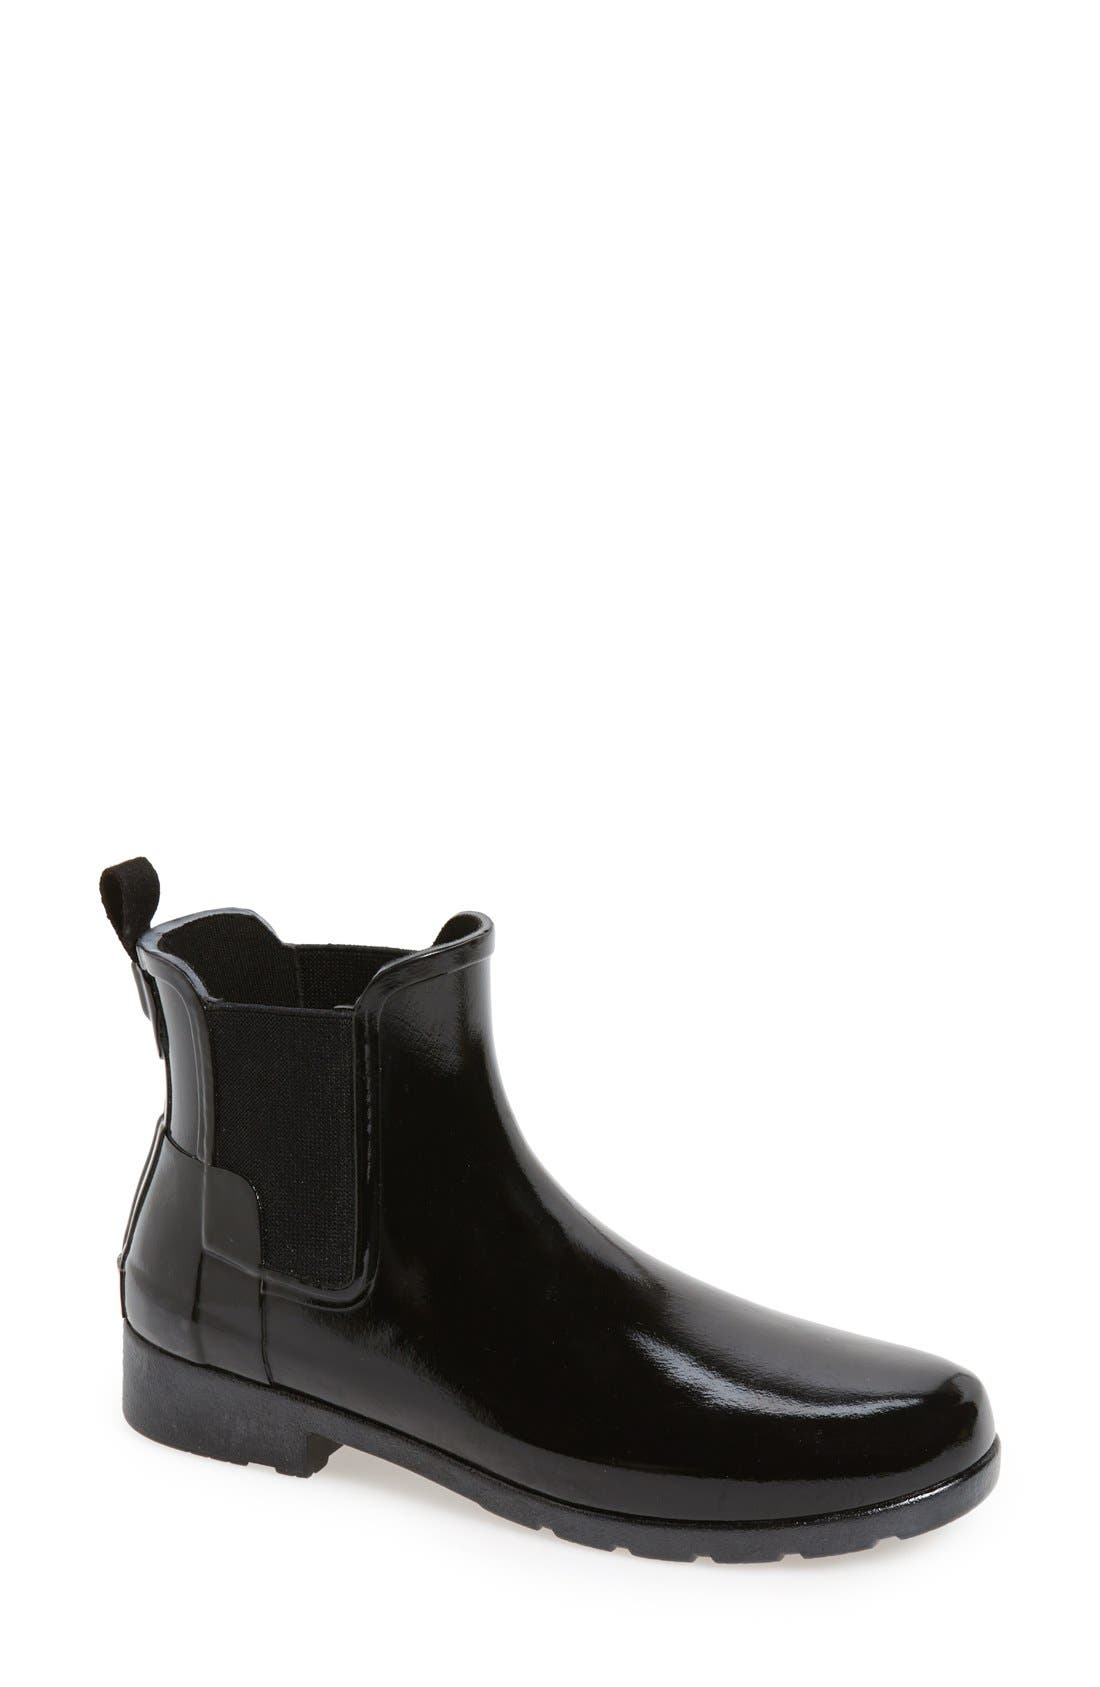 HUNTER,                             Original Refined Chelsea Waterproof Rain Boot,                             Main thumbnail 1, color,                             BLACK